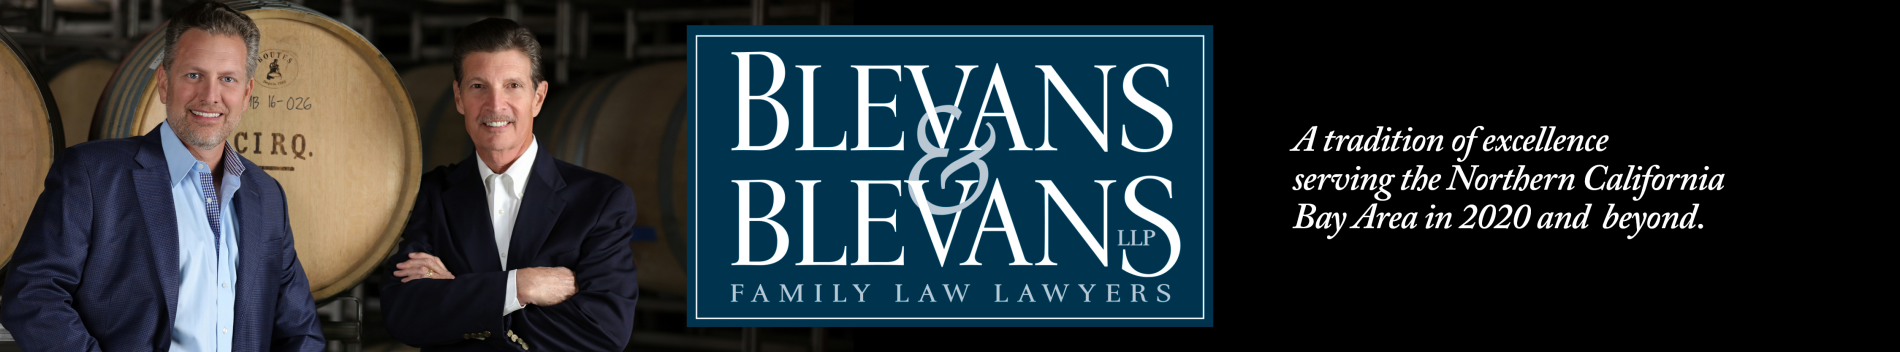 Blevans & Blevans Family Law Lawyers